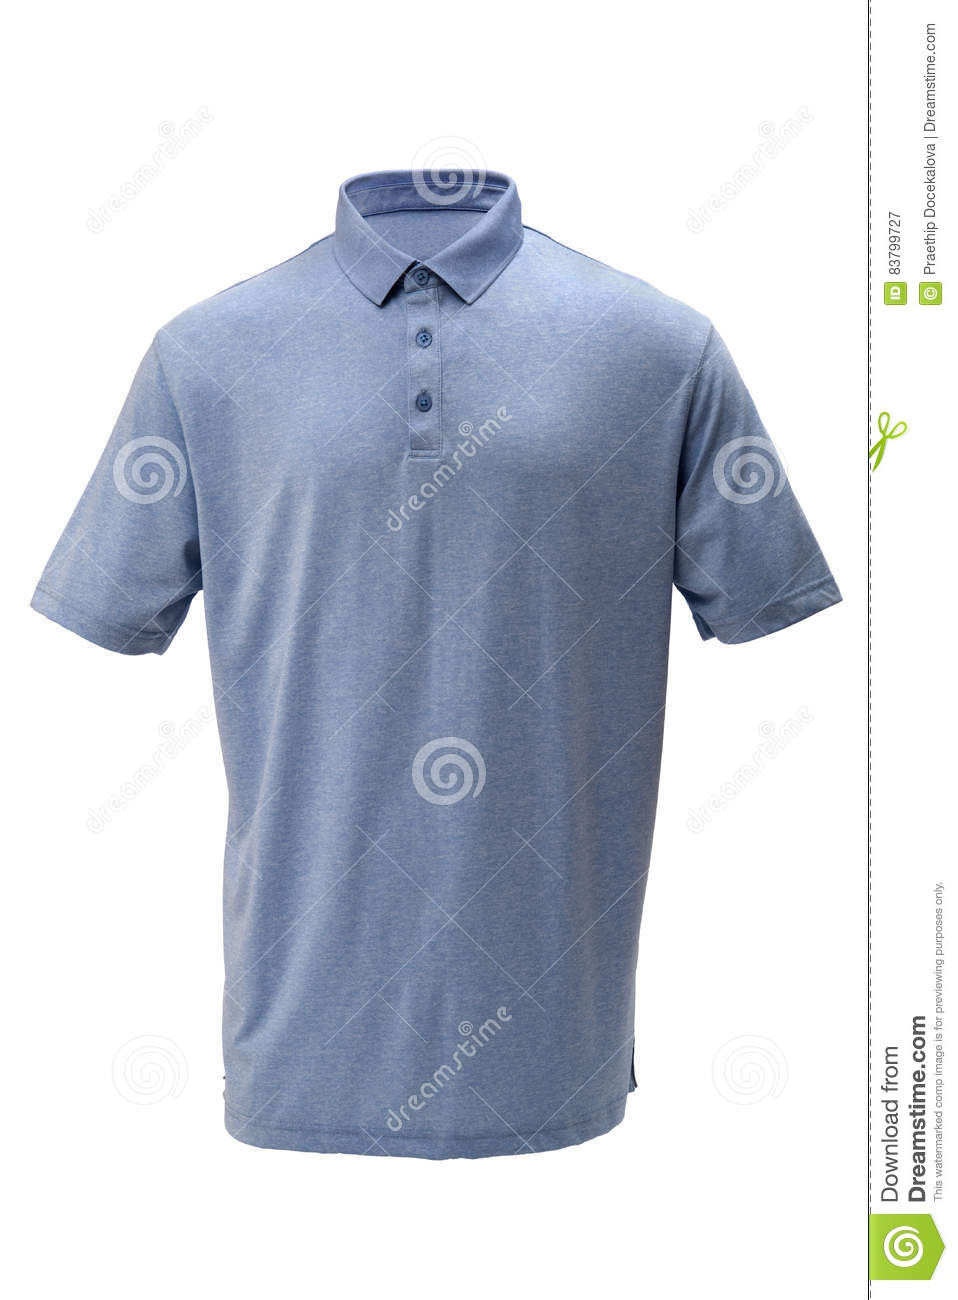 Golf tee shirt light blue color for man or woman